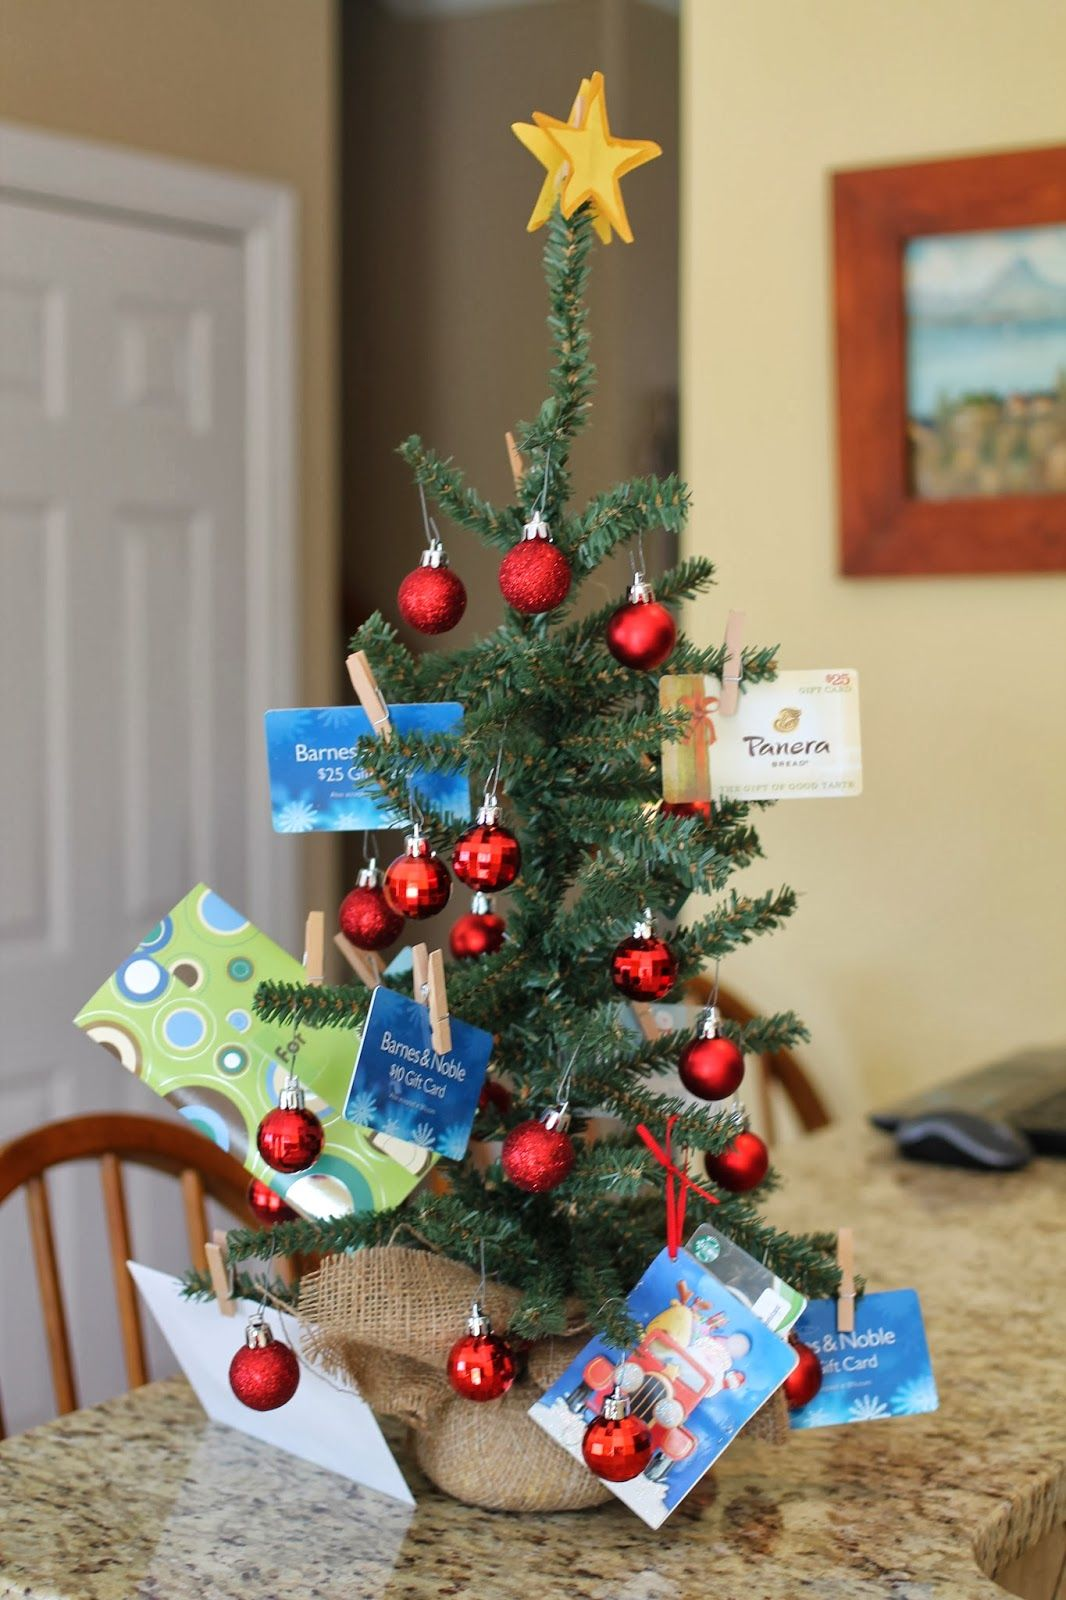 Gift card tree ideas pinterest - Gift Card Christmas Tree